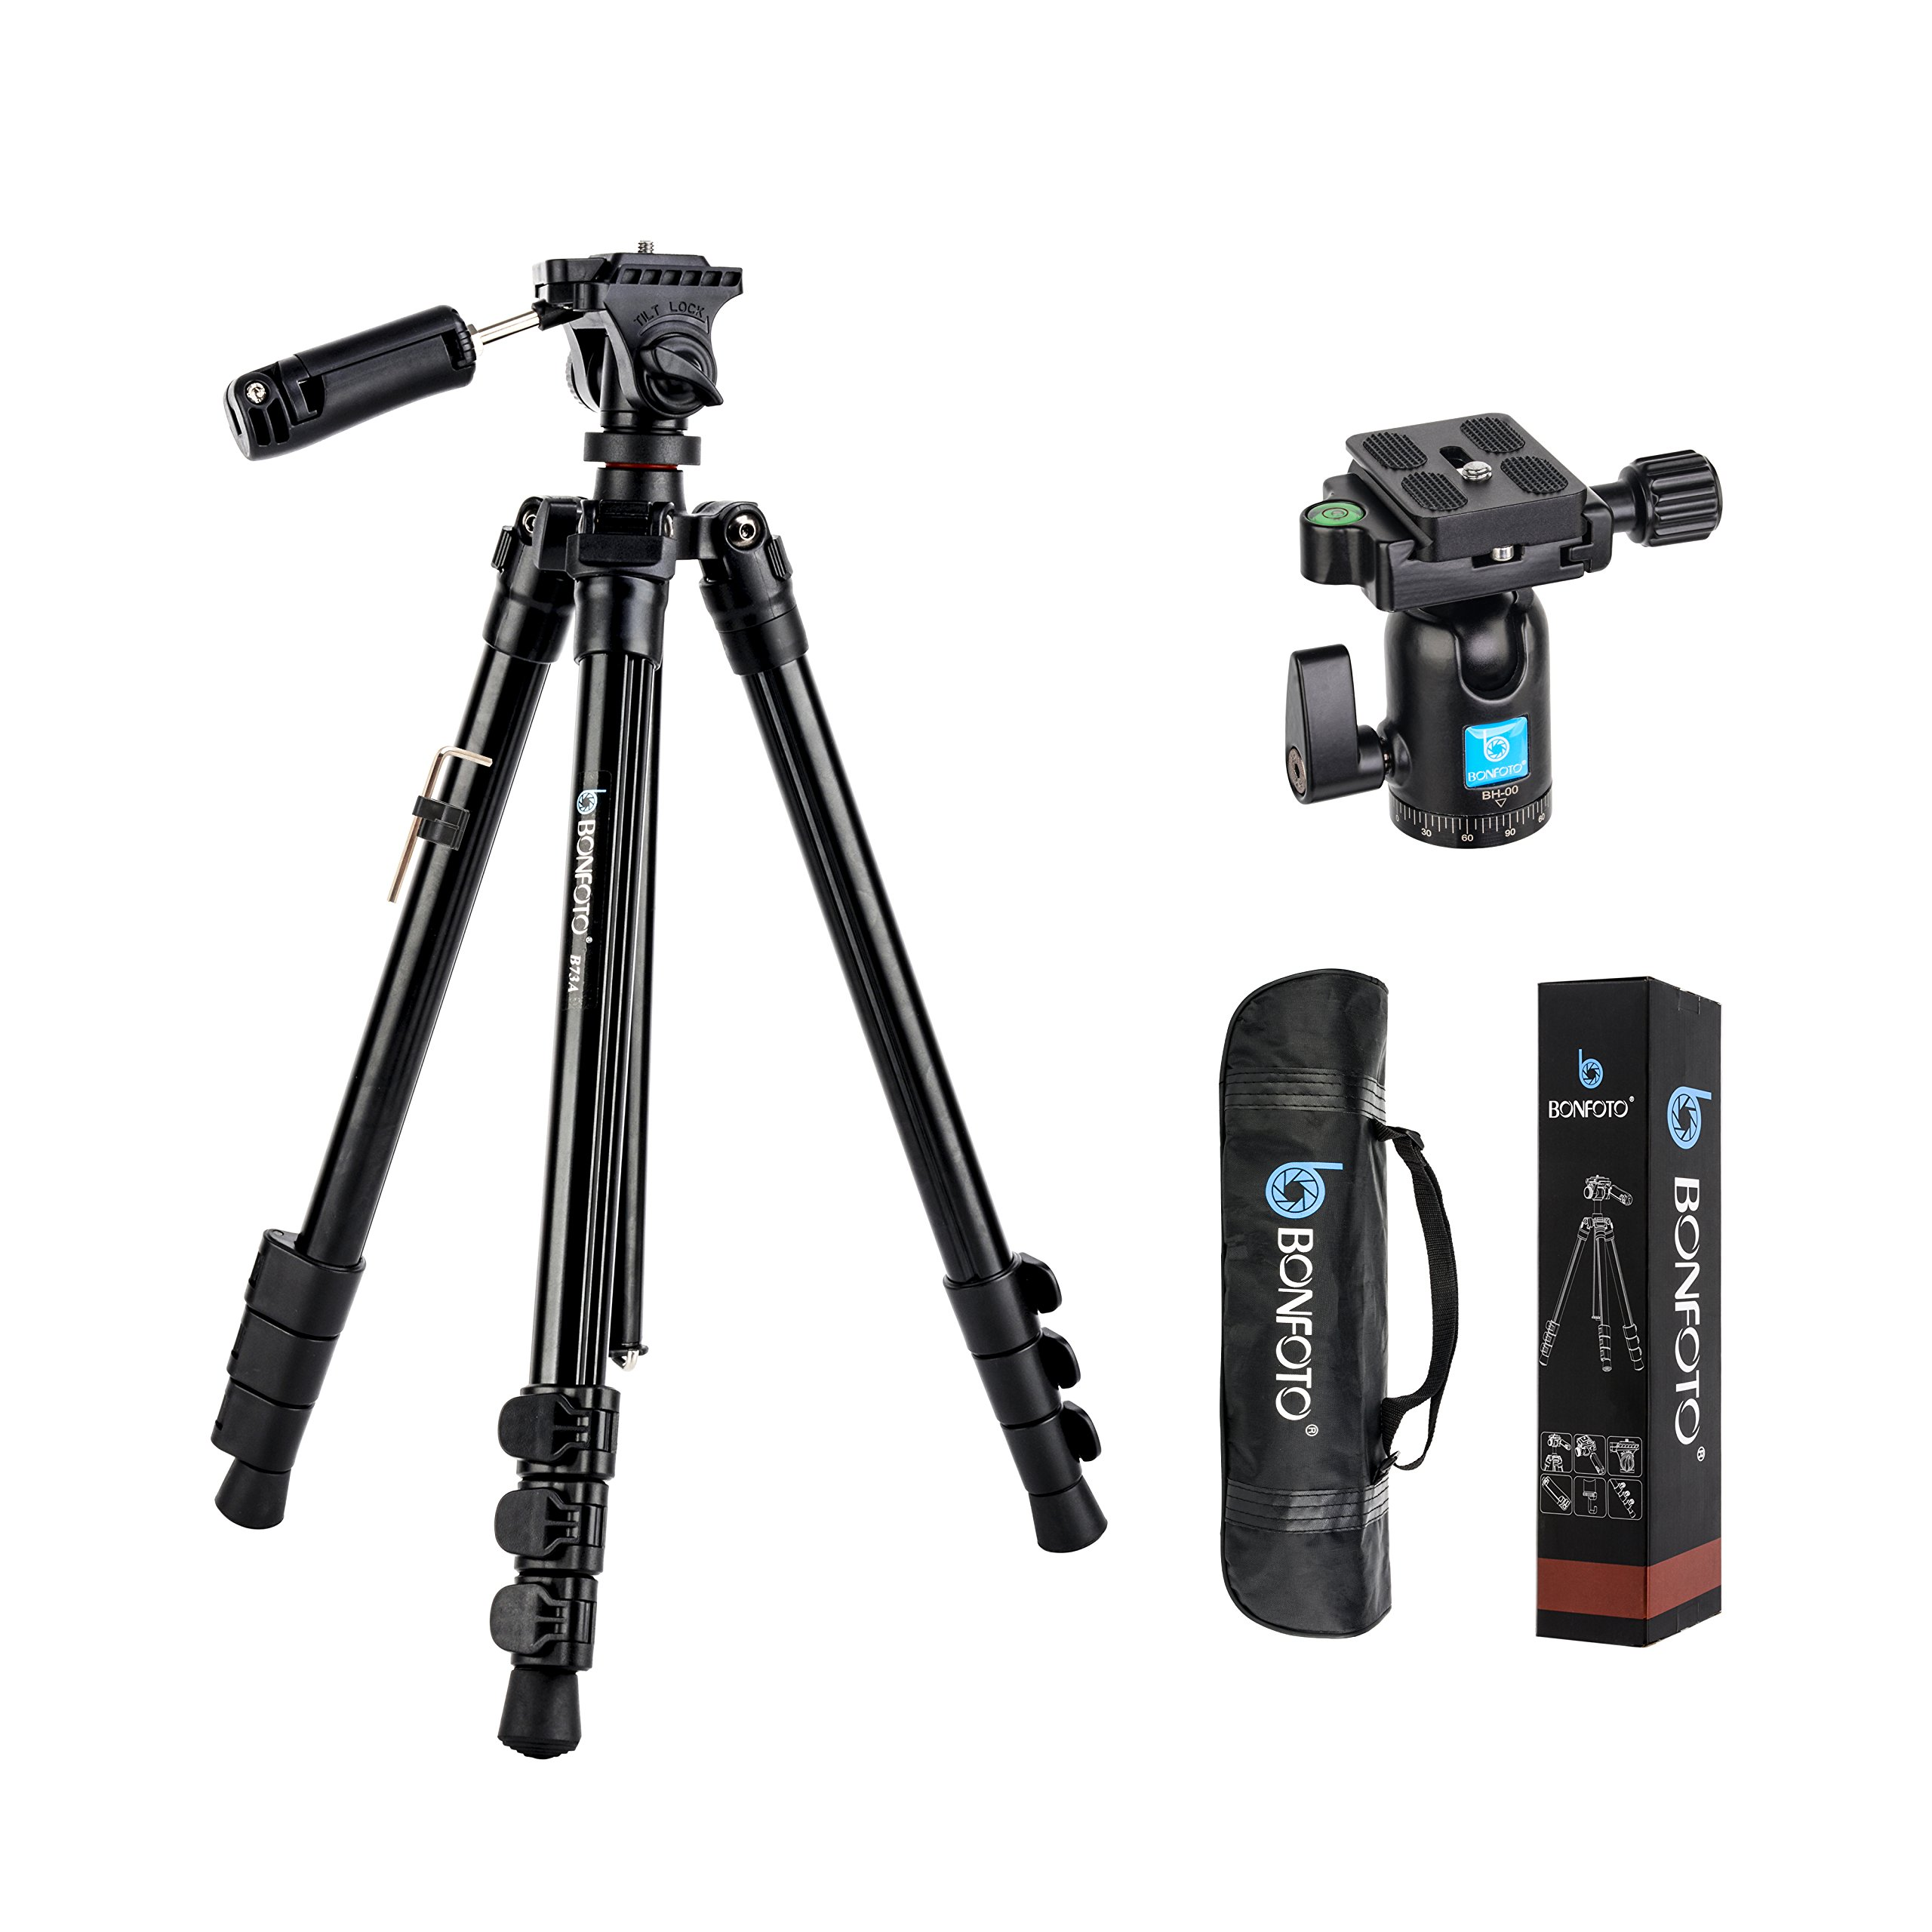 BONFOTO B73A + BH-00 58-inch Aluminum Alloy Professional Compact Travel Camera Tripod and Monopod with Panorama Pan Head + Swivel Ball Head + Carrying Bag for Smartphones and Digital Camera by BONFOTO